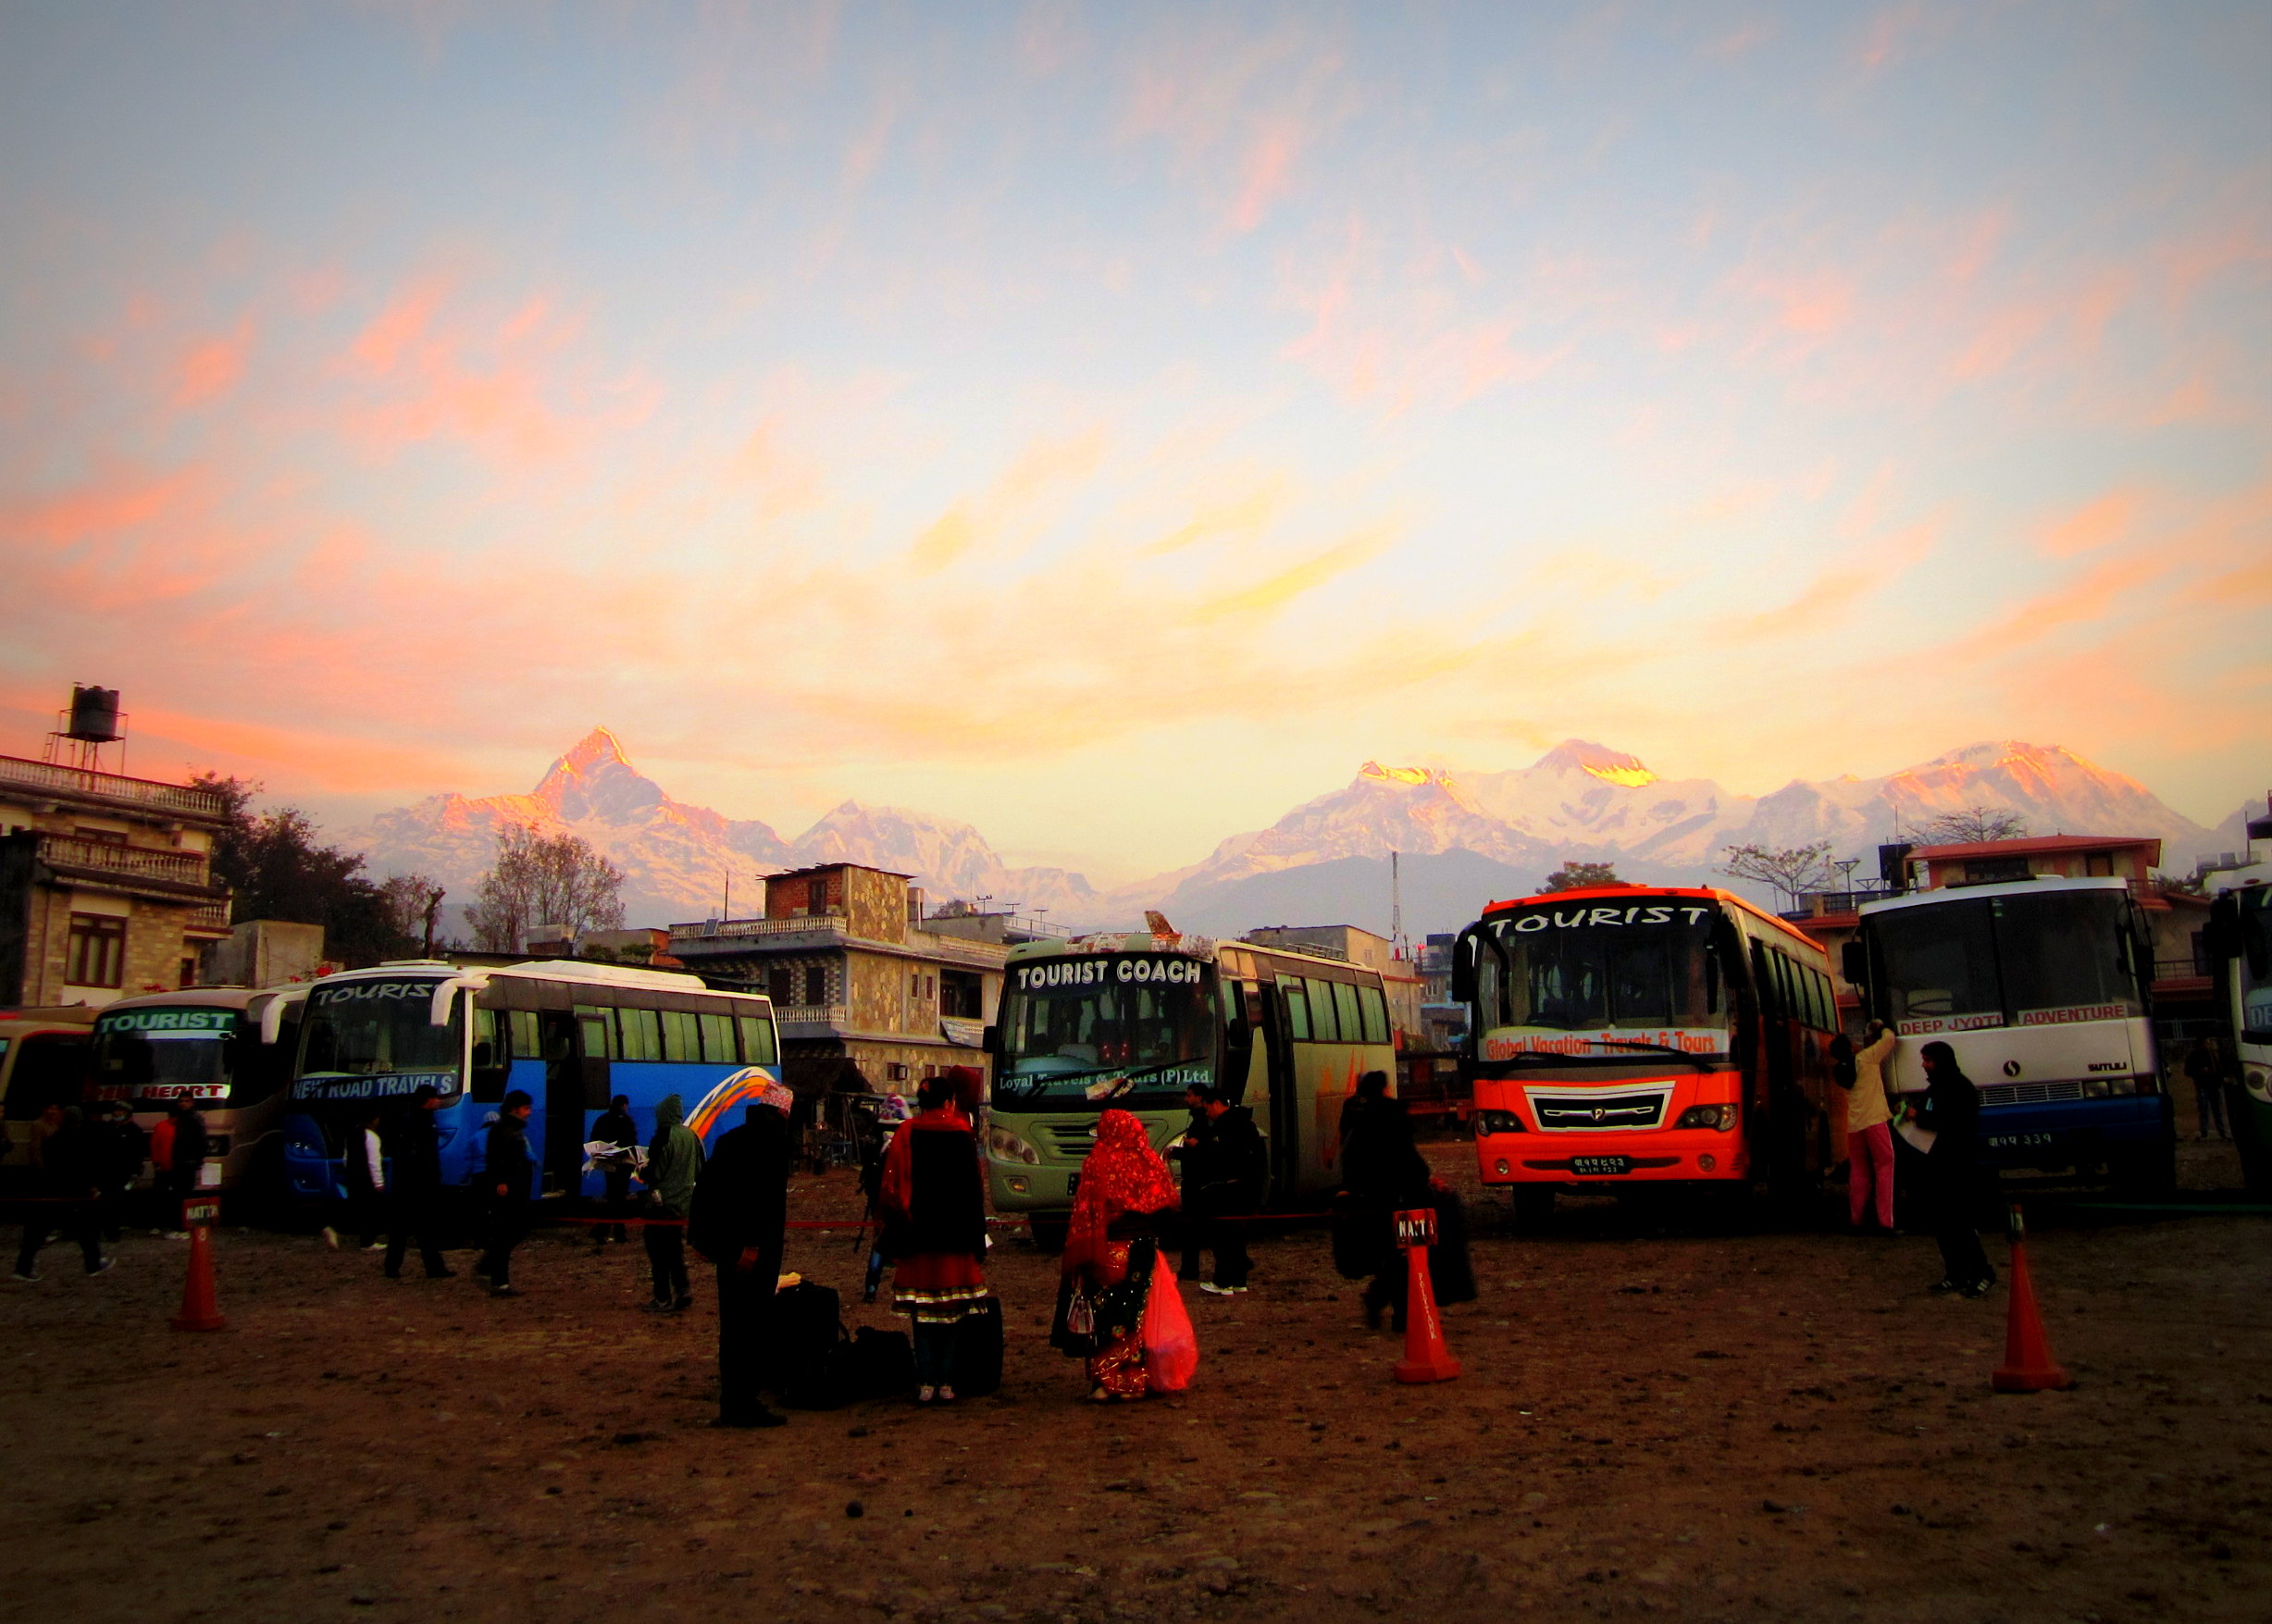 The sunrise as we caught a bus out of Pokhara back to Kathmandu, Nepal